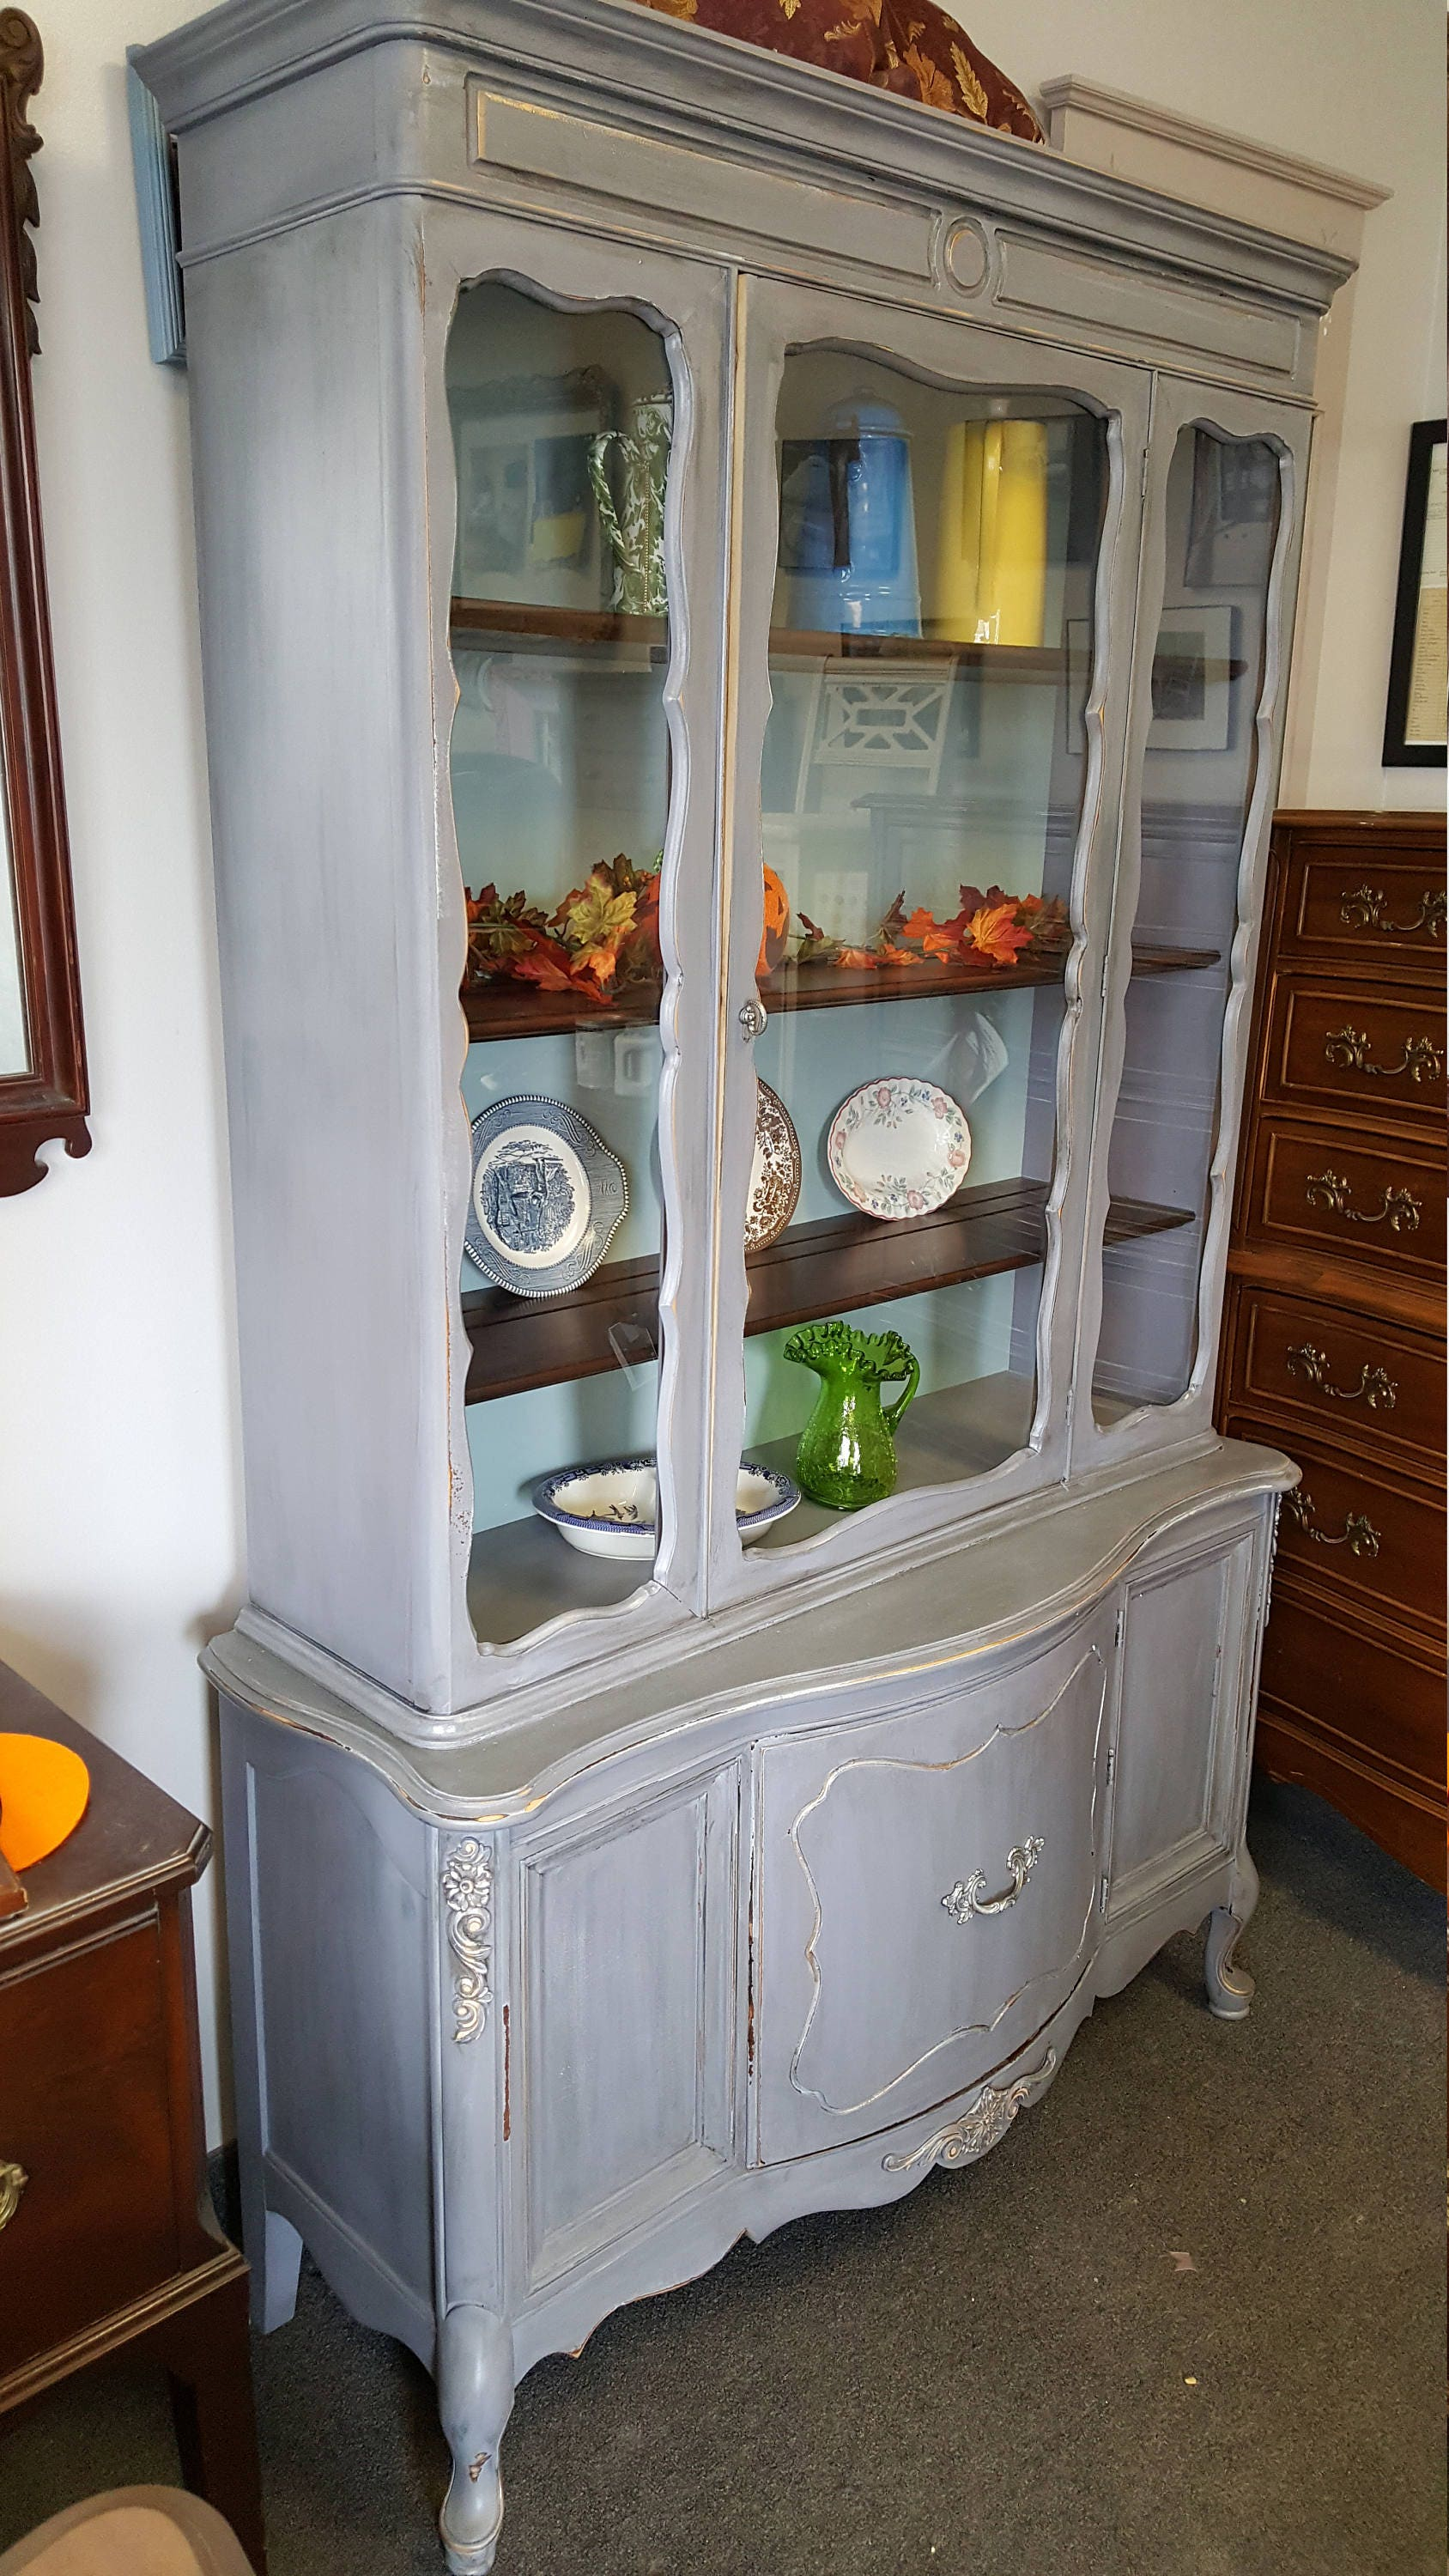 French country china cabinets - Gallery Photo Gallery Photo Gallery Photo Gallery Photo